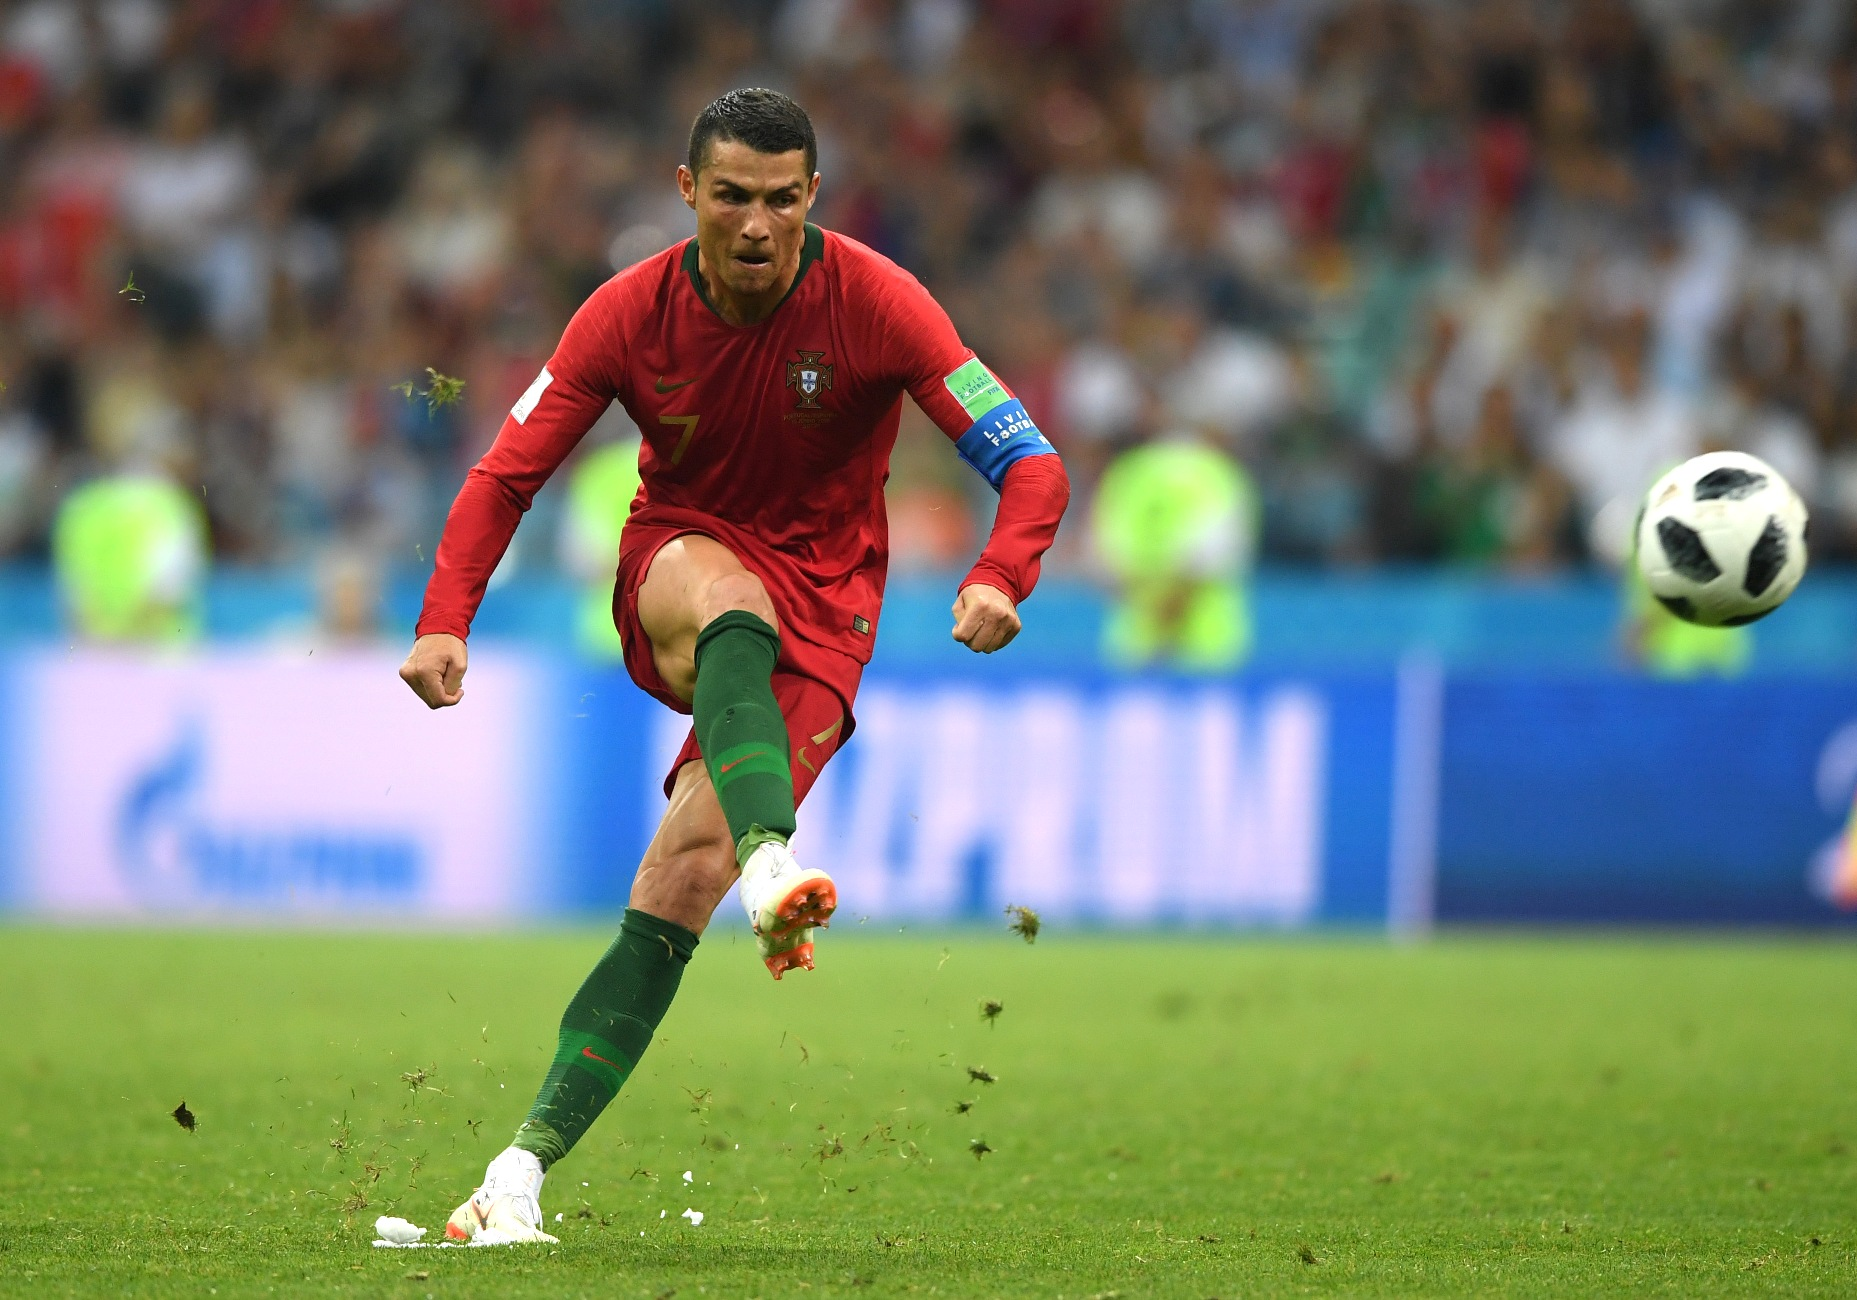 Cristiano Ronaldo Images Wallpapers In Hd Download For Mobile